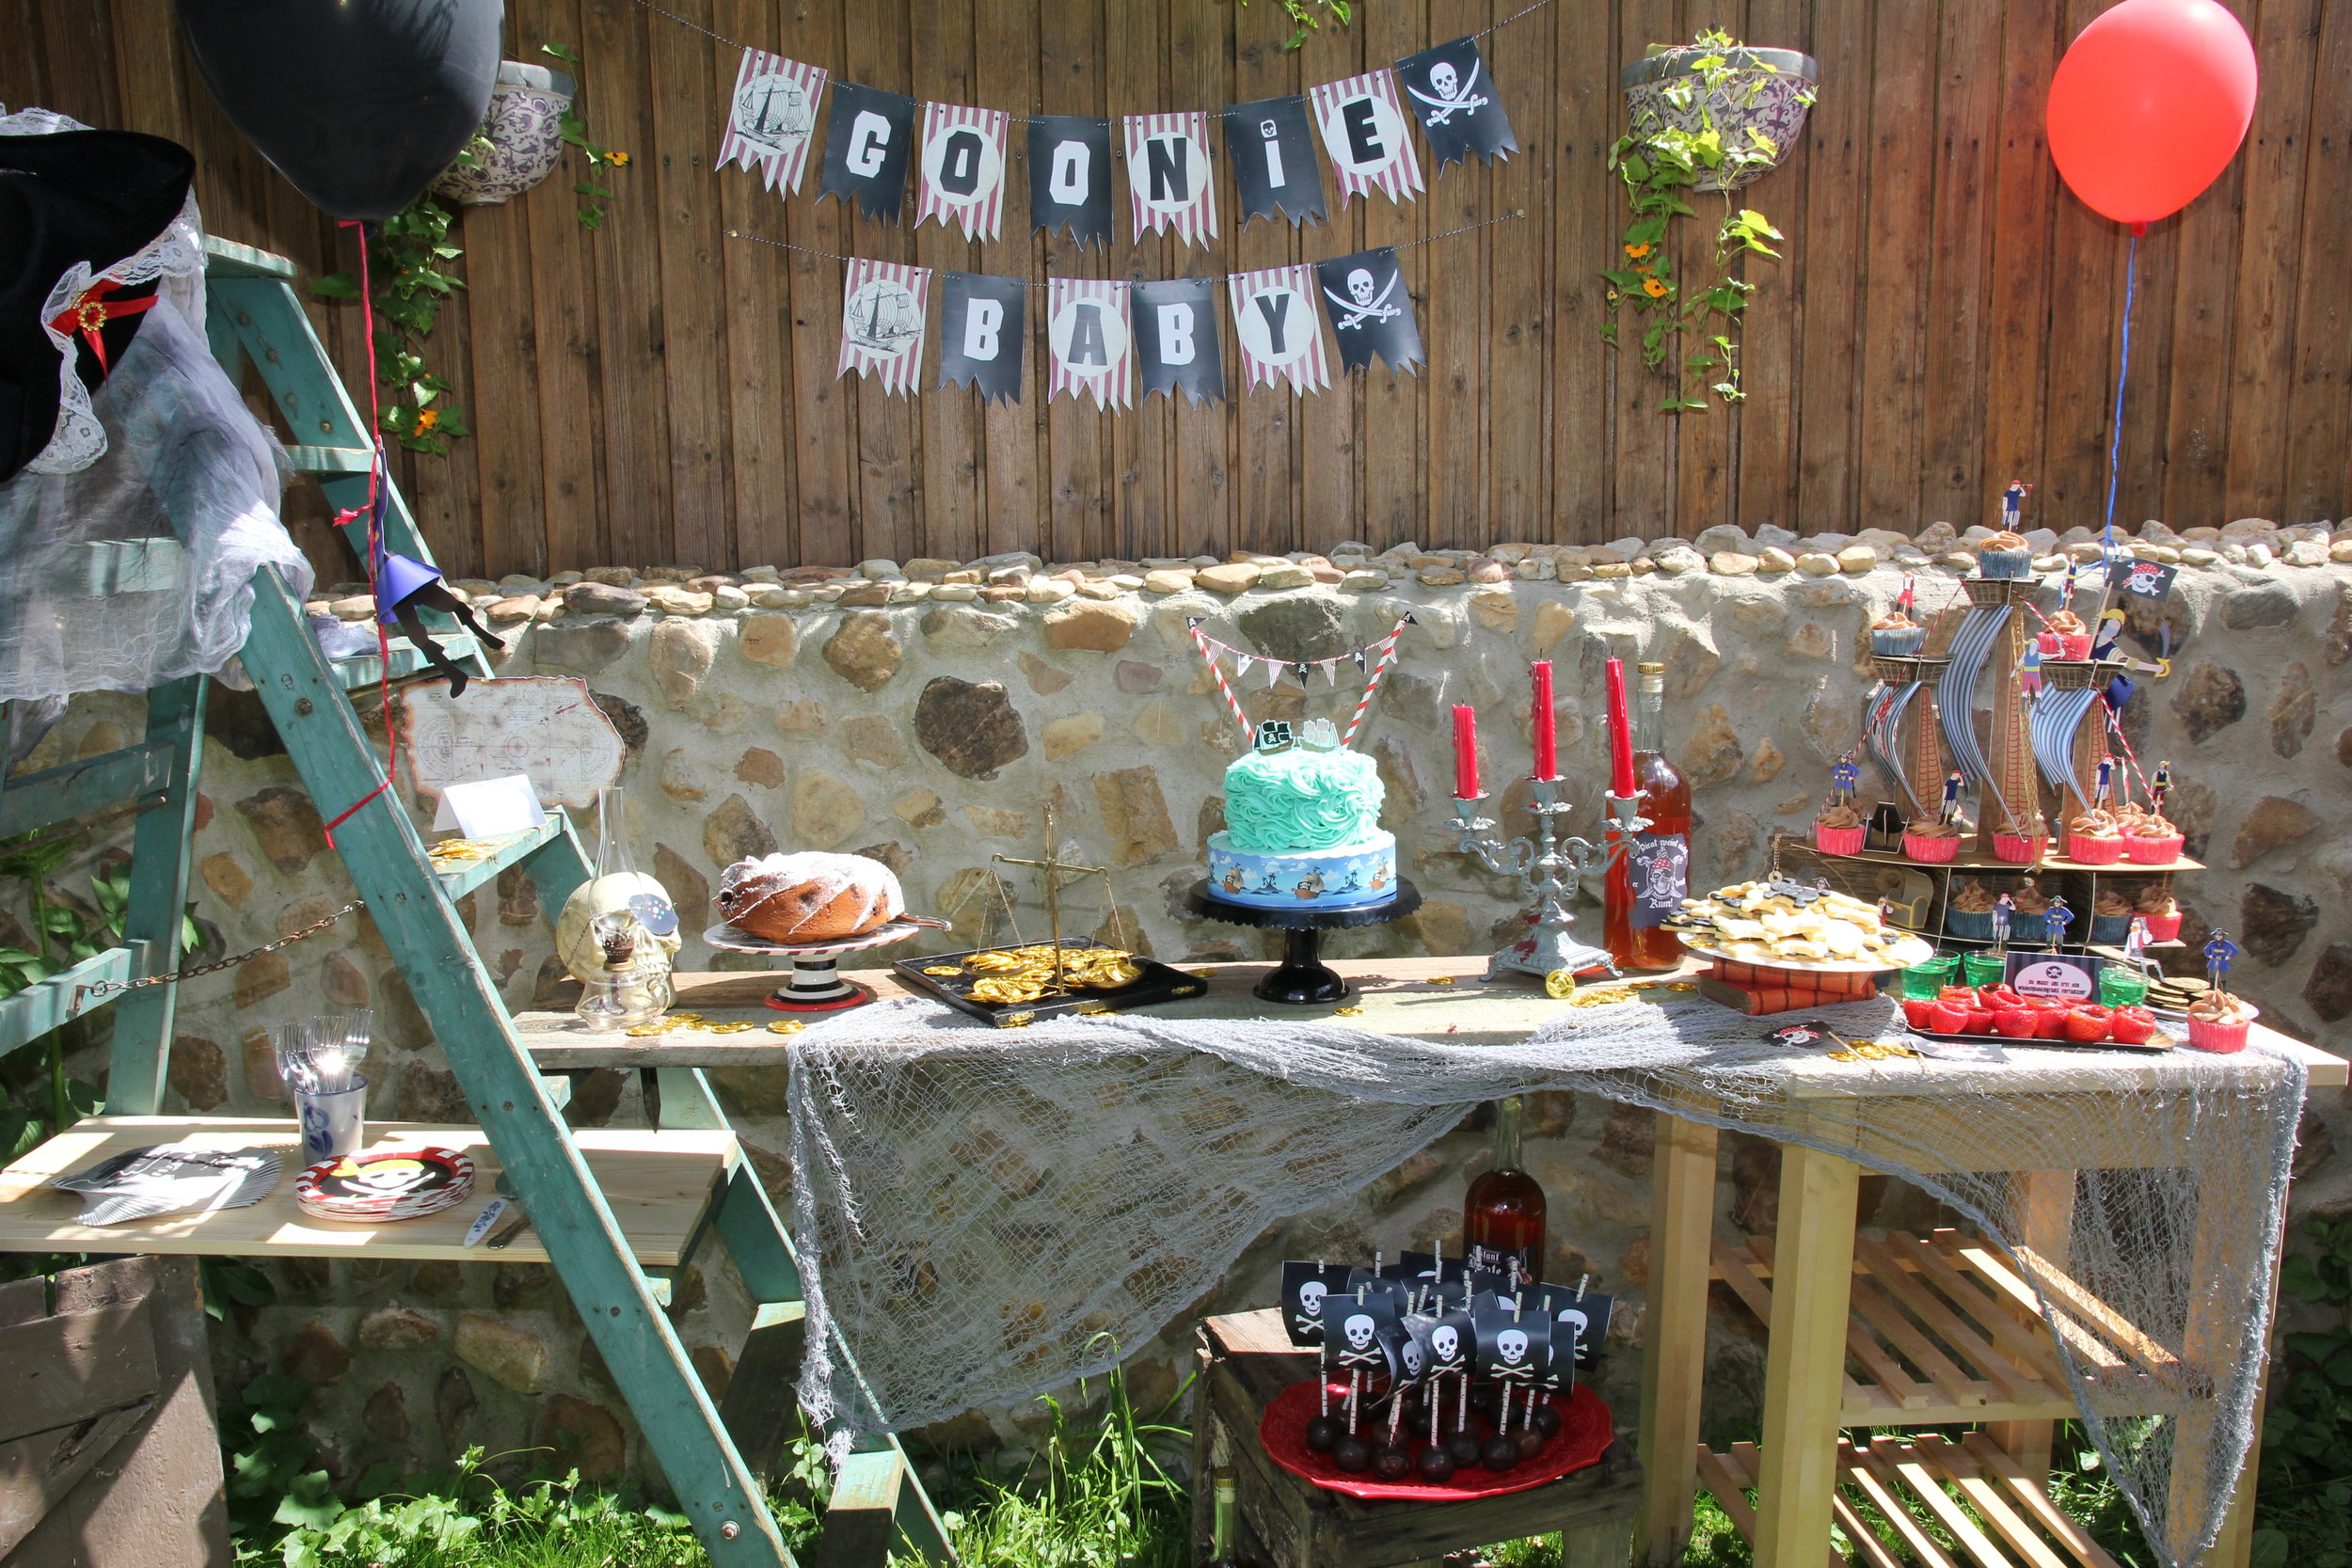 Piraten Goonies Baby Shower Sweet Table.jpg